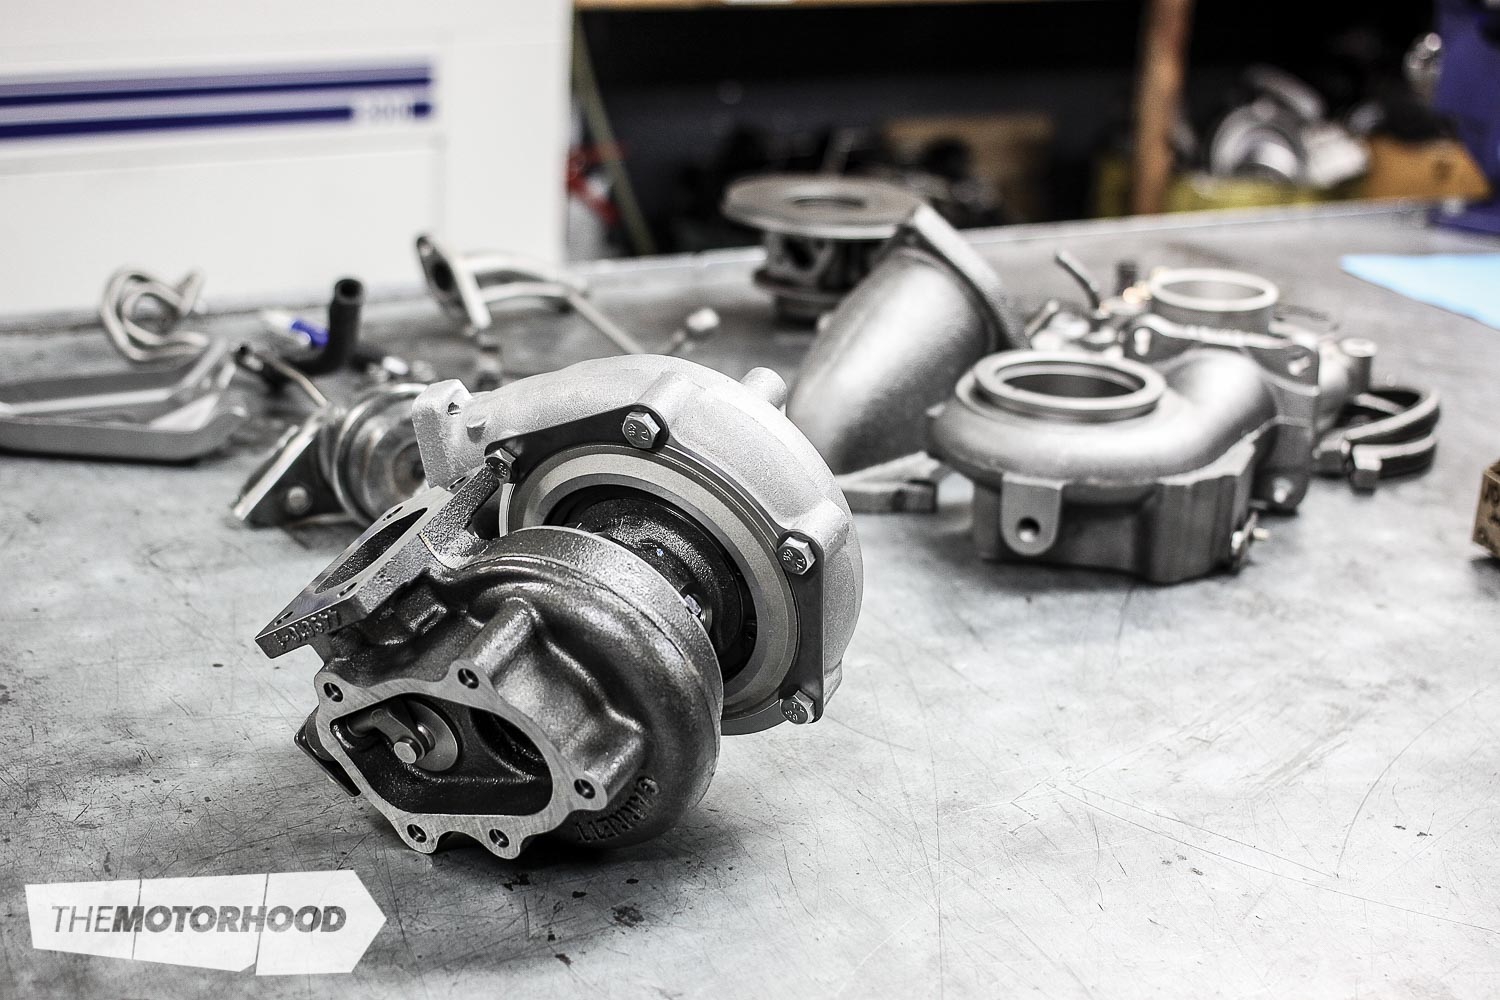 Turbo tech: stop hurting your turbo — The Motorhood